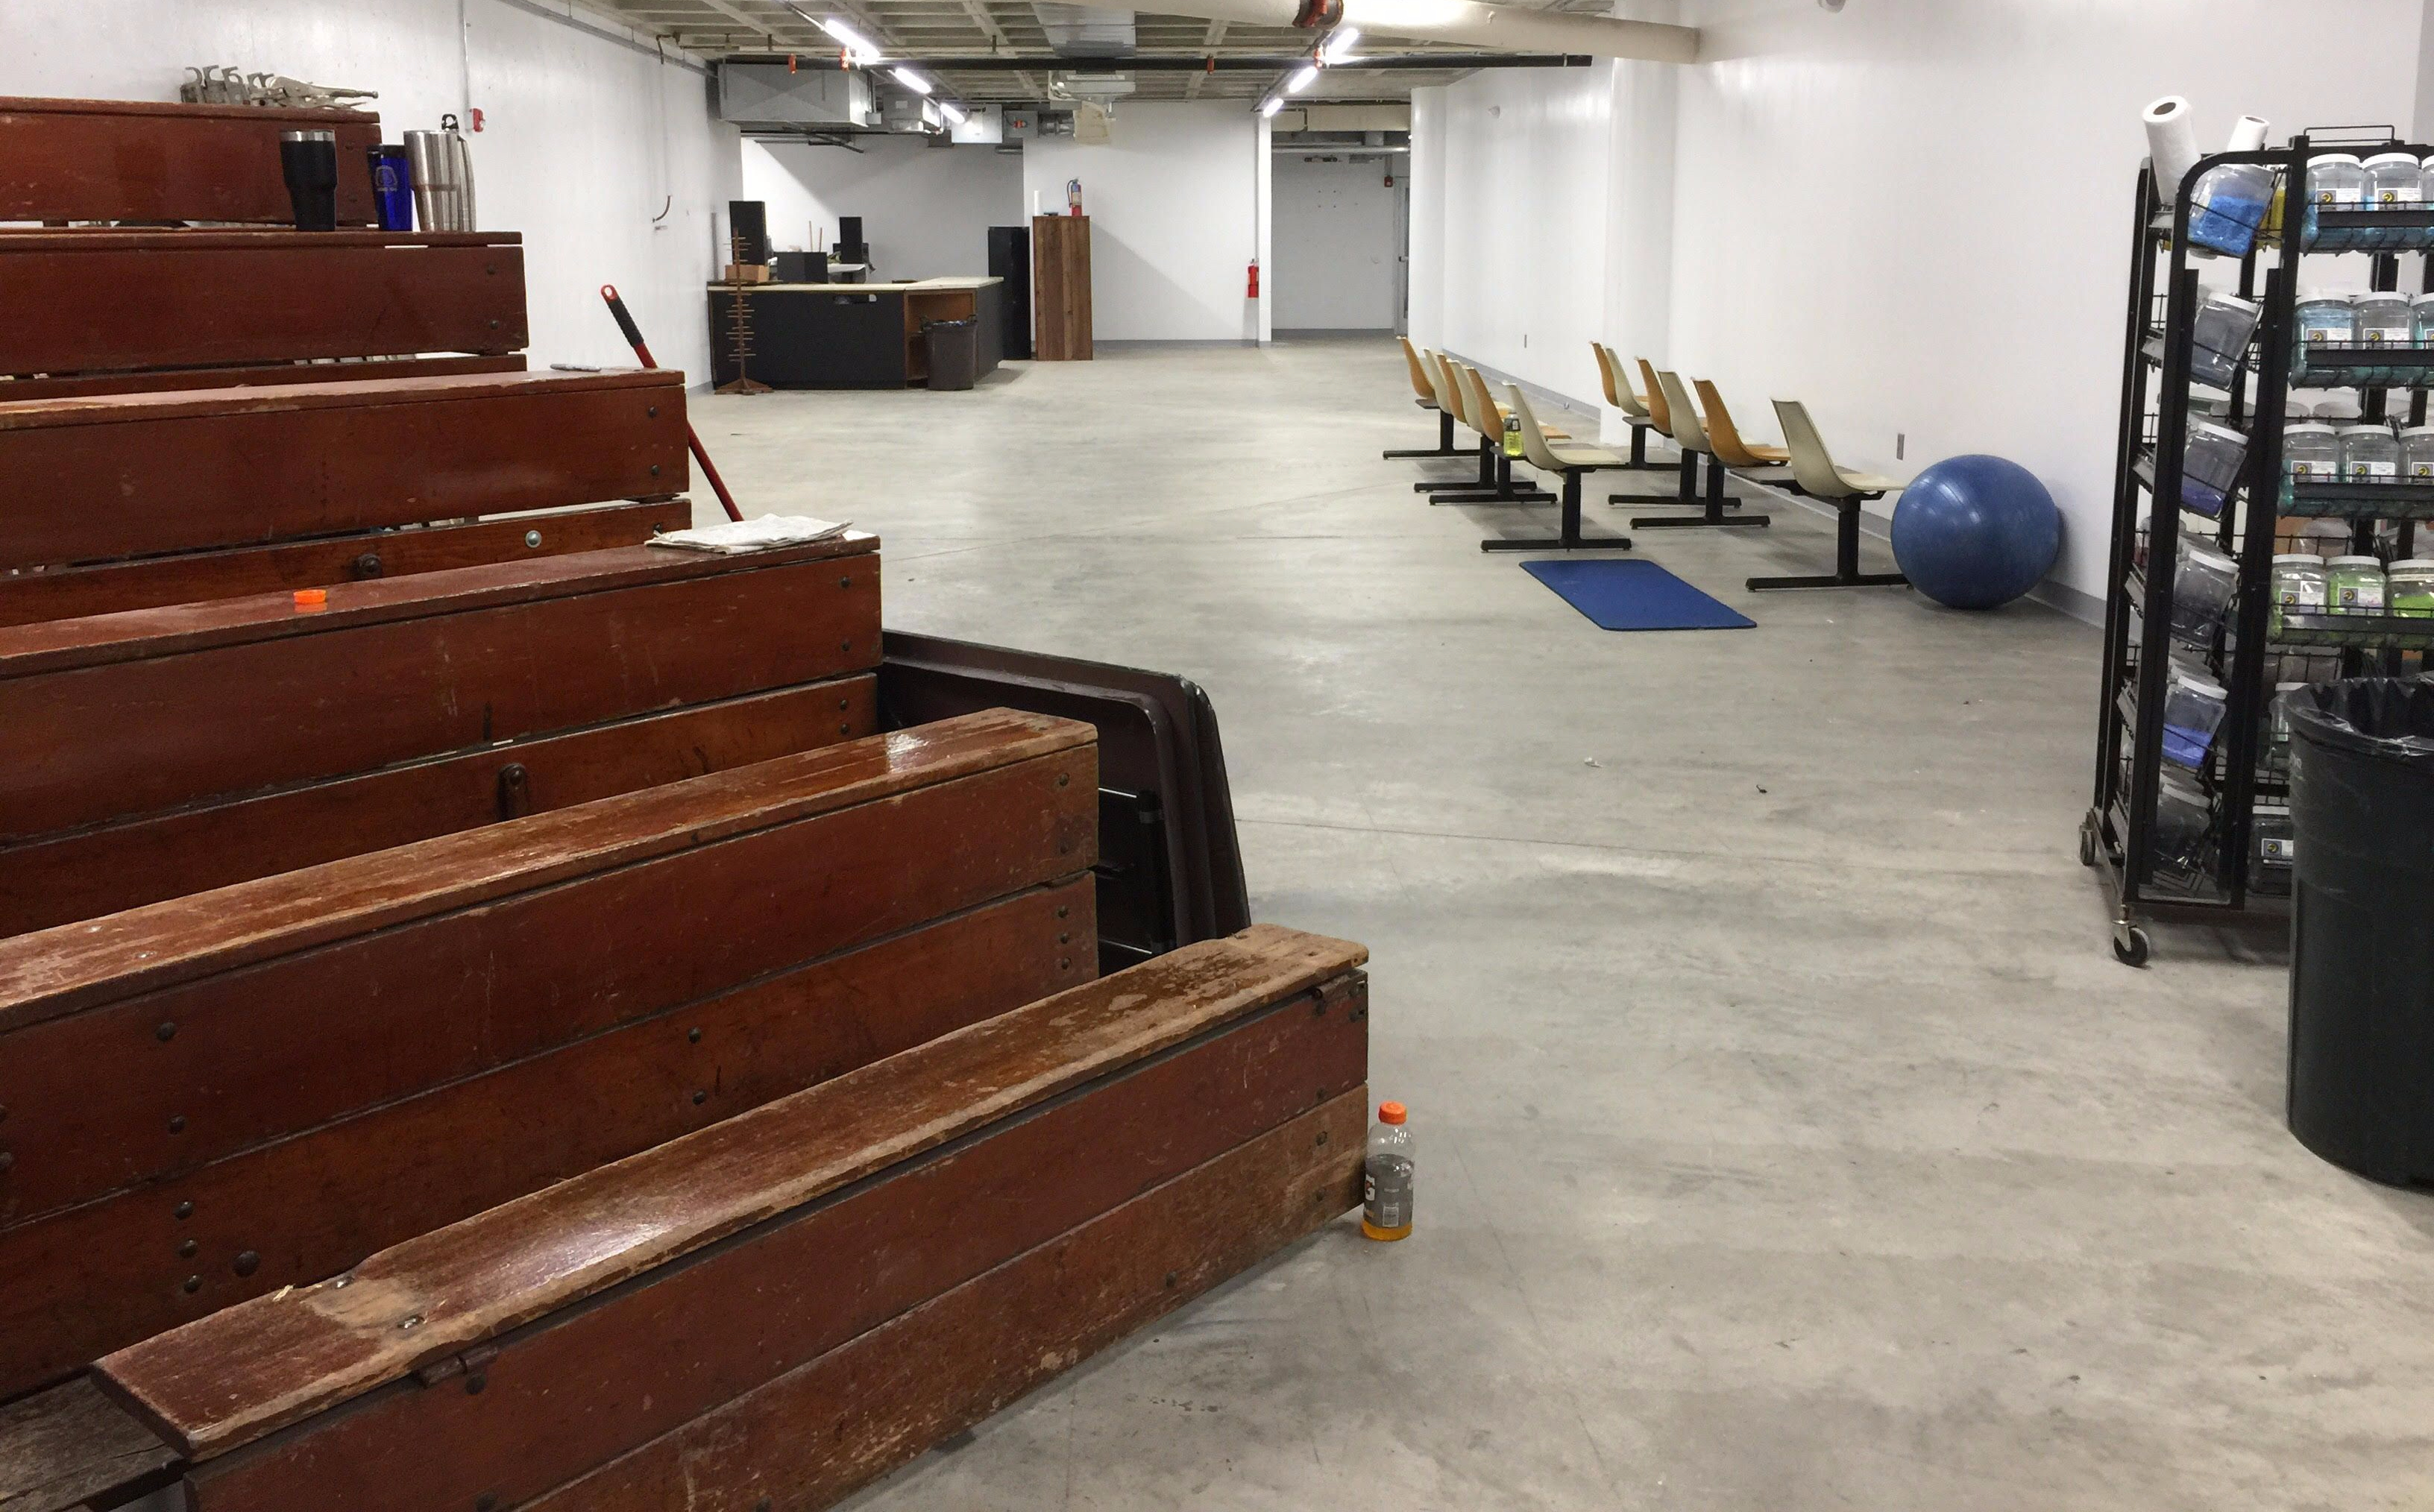 Jesse Bogenrief rents this space and will use it as a gallery and studio. He has bleachers and stools for potential crowds and educational classes.